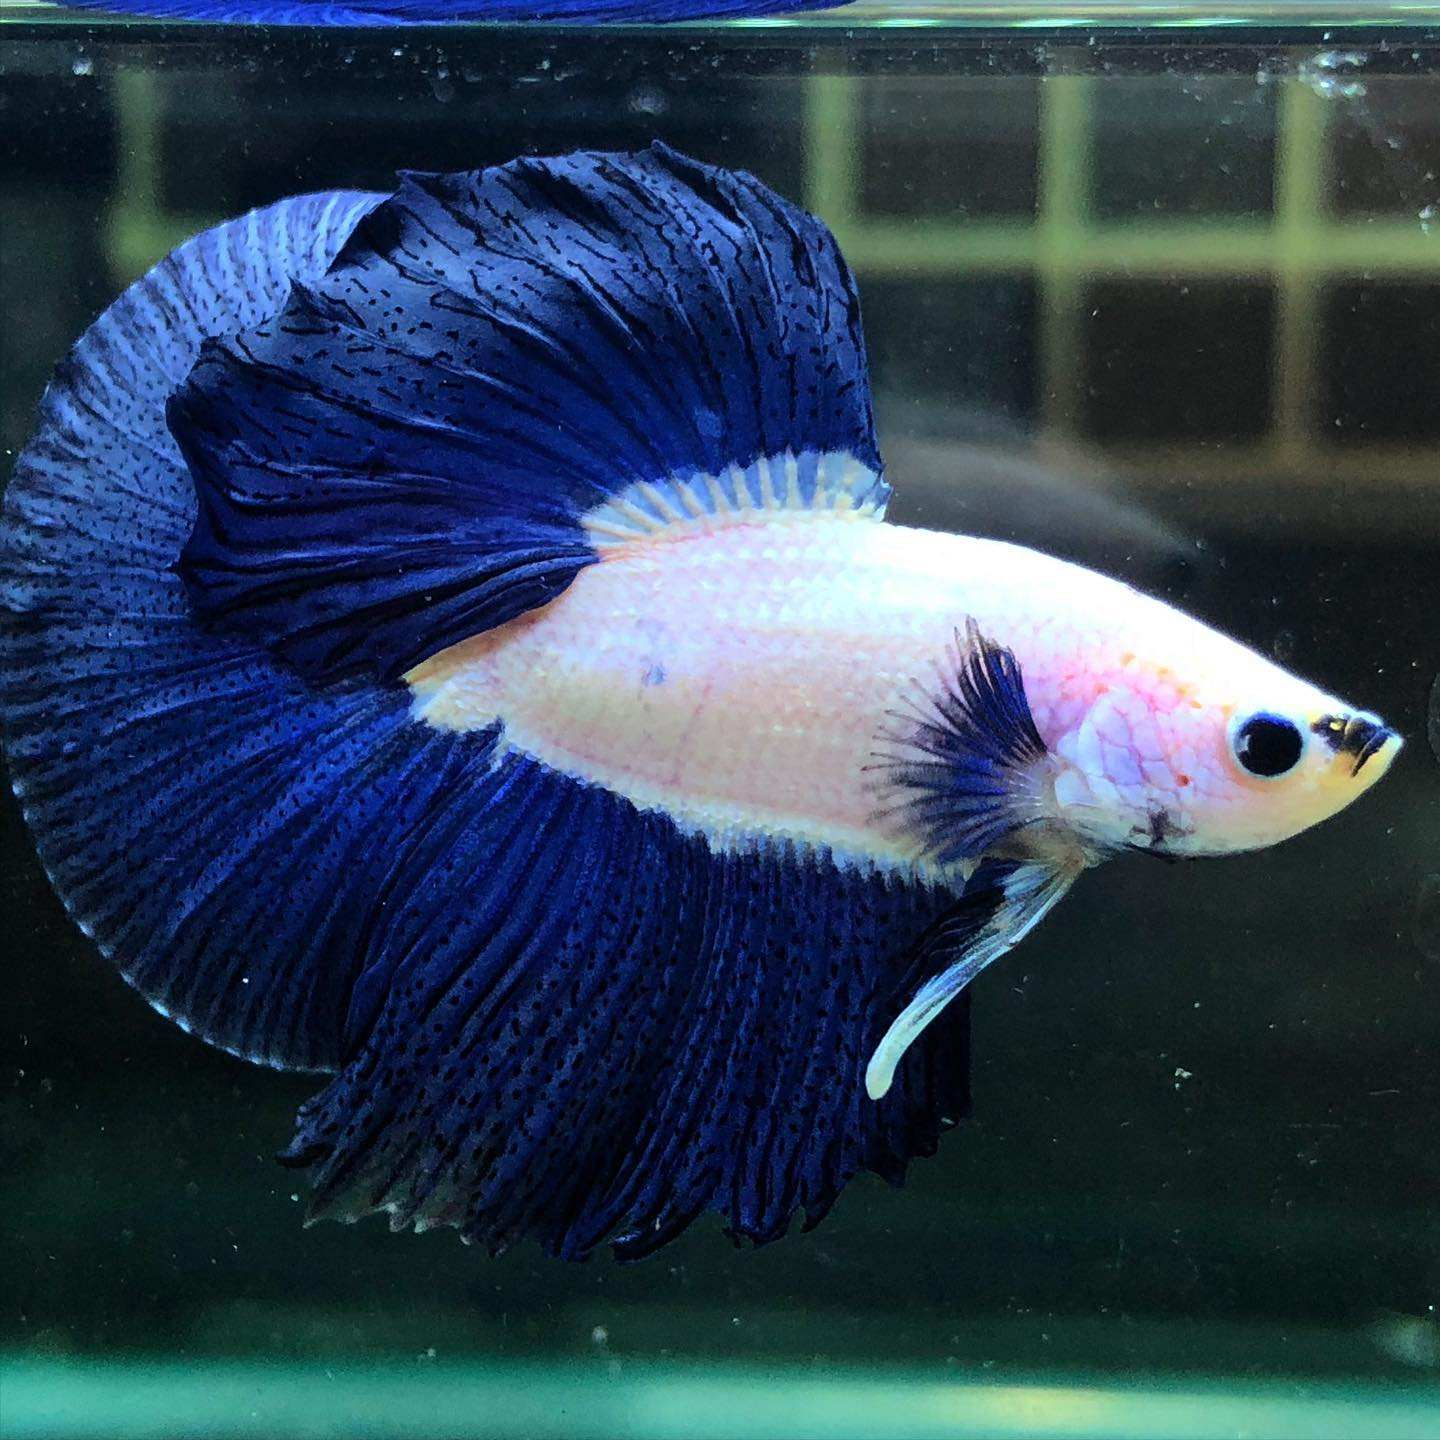 Blue Rim Betta Fish HALFMOONS - Thailand Betta Fish Live Male Female Siamese Fighing Fish